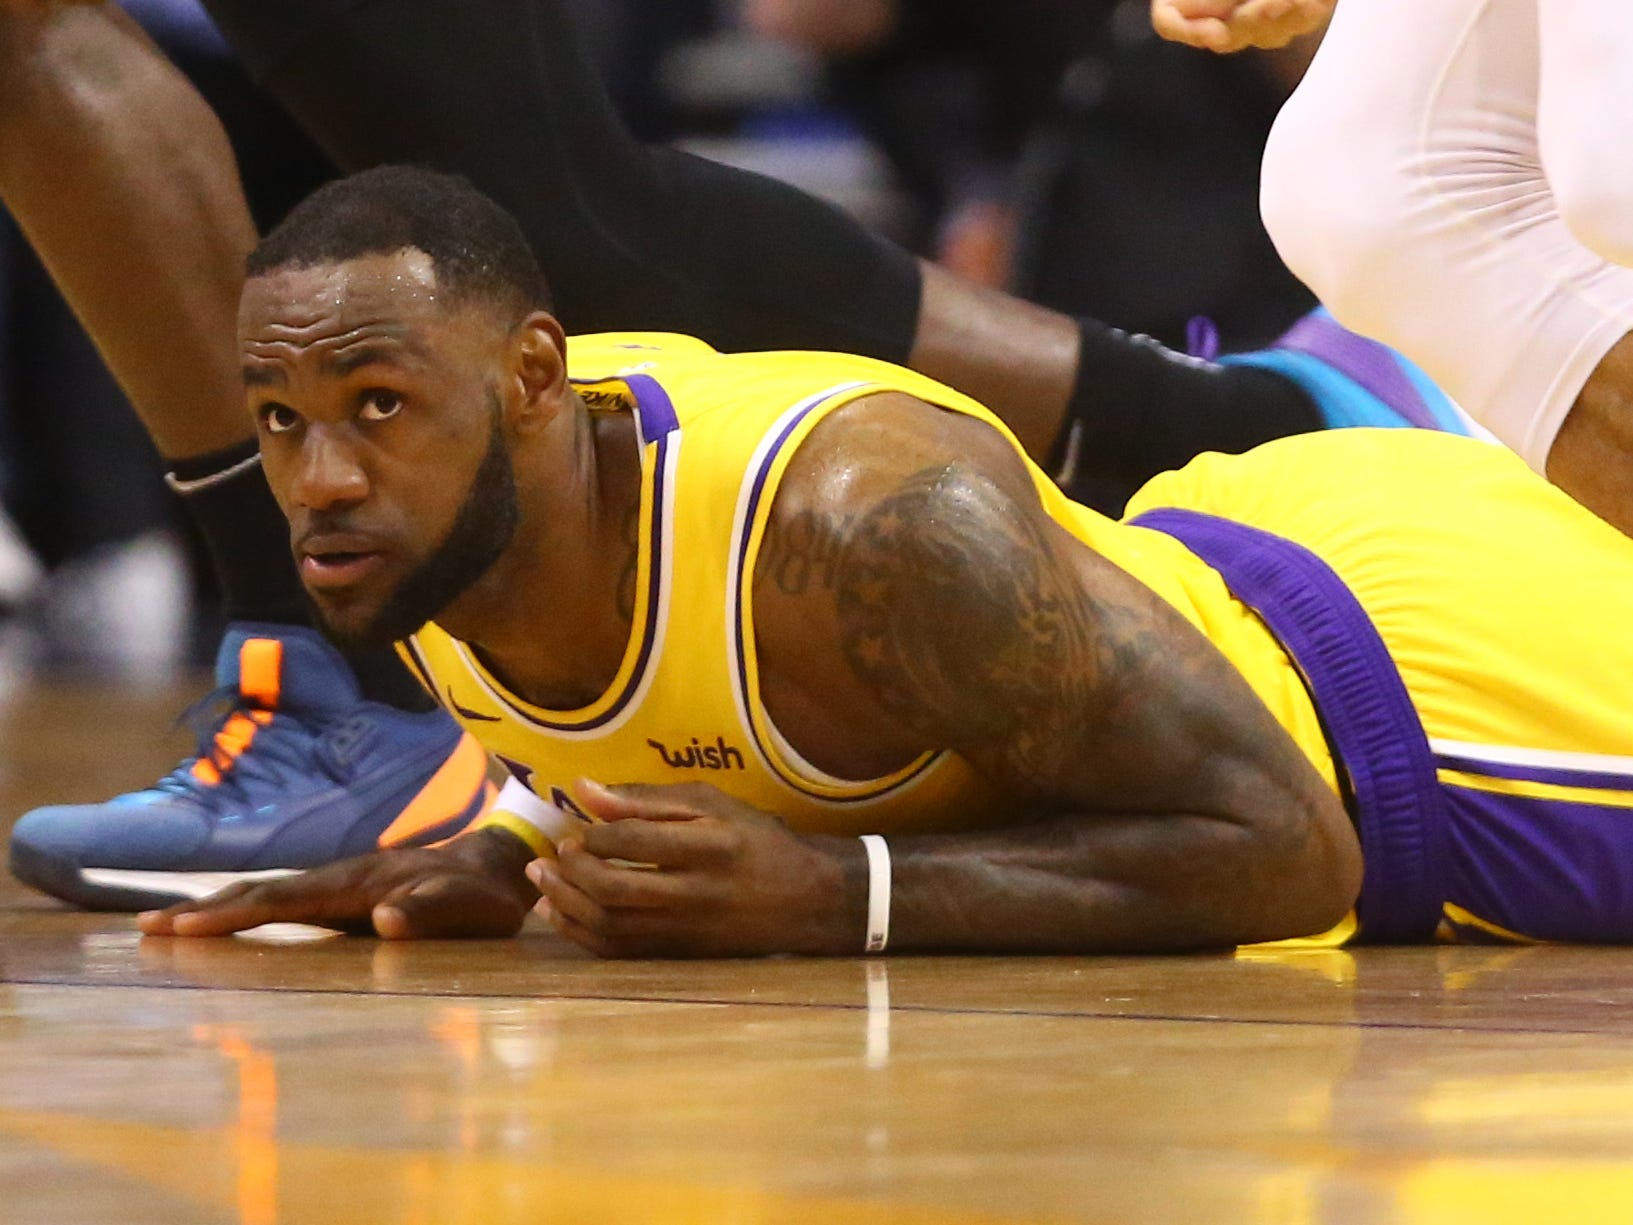 March 2: Lakers forward LeBron James falls to the floor during a dispiriting loss to the league-worst Suns in Phoenix.